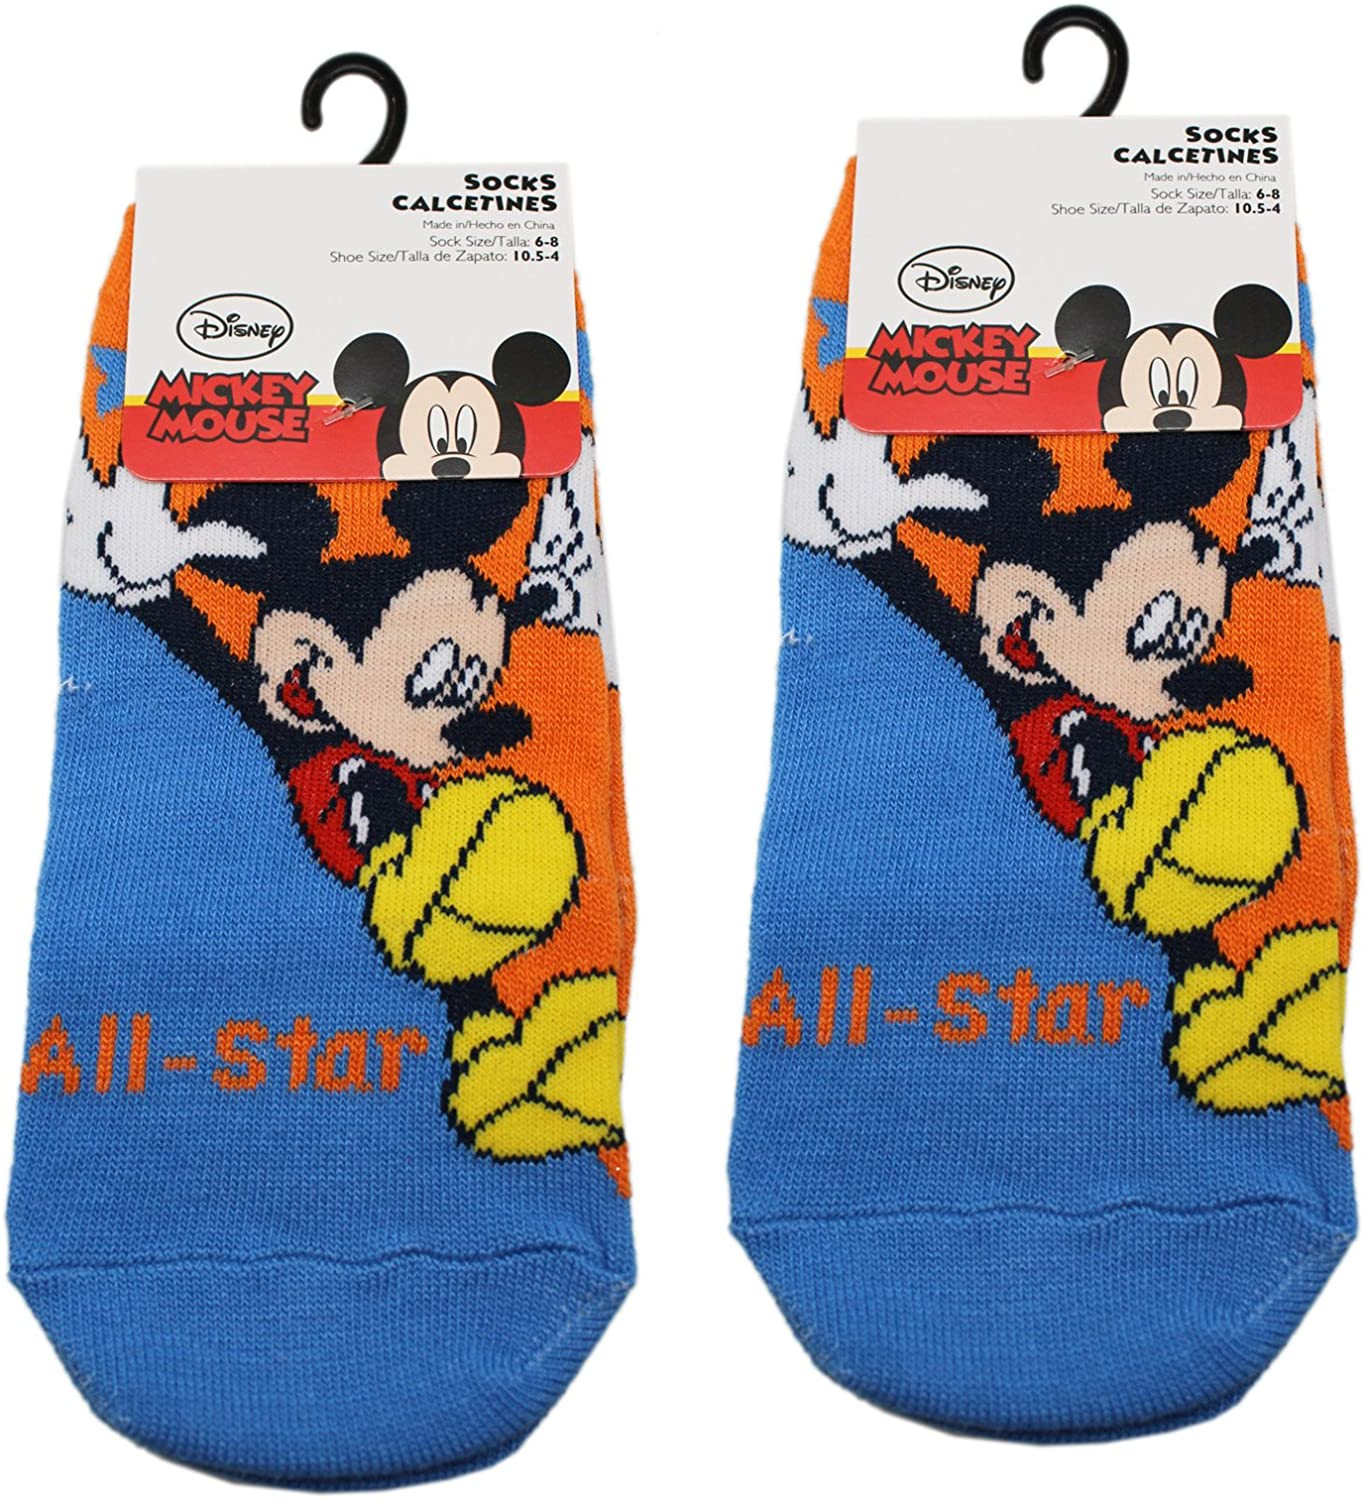 DISNEY PIXAR CARS 2 PAIRS OF SLIPPER SOX   NEW  2 SIZES AVAILABLE